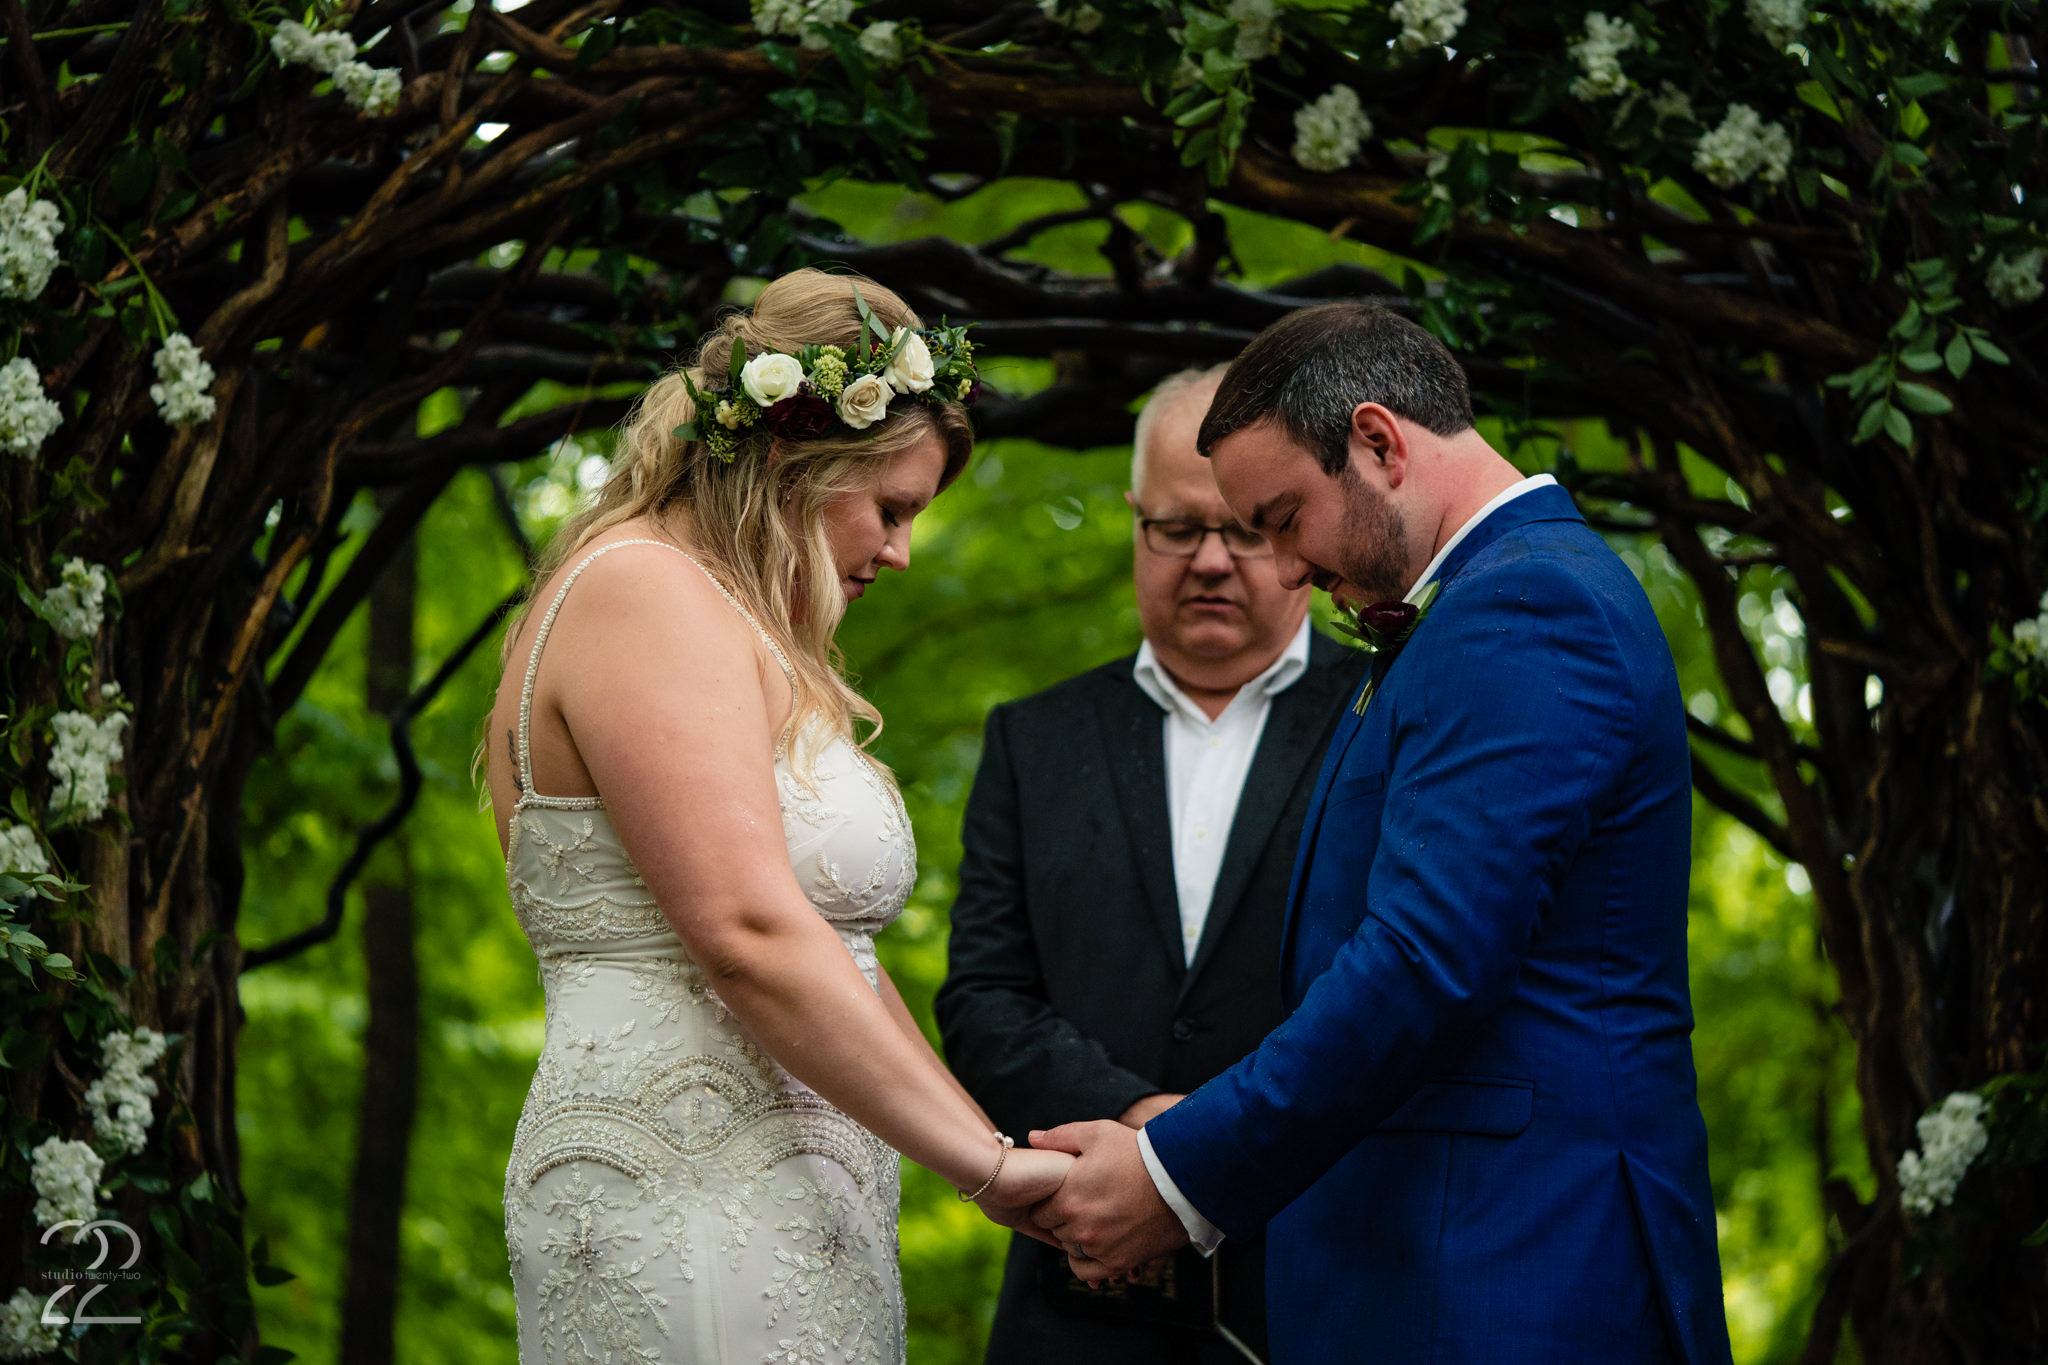 A moment of prayer and reflection within nature is powerful and so meaningful. This moment was made more beautiful only because of the love of these two people.